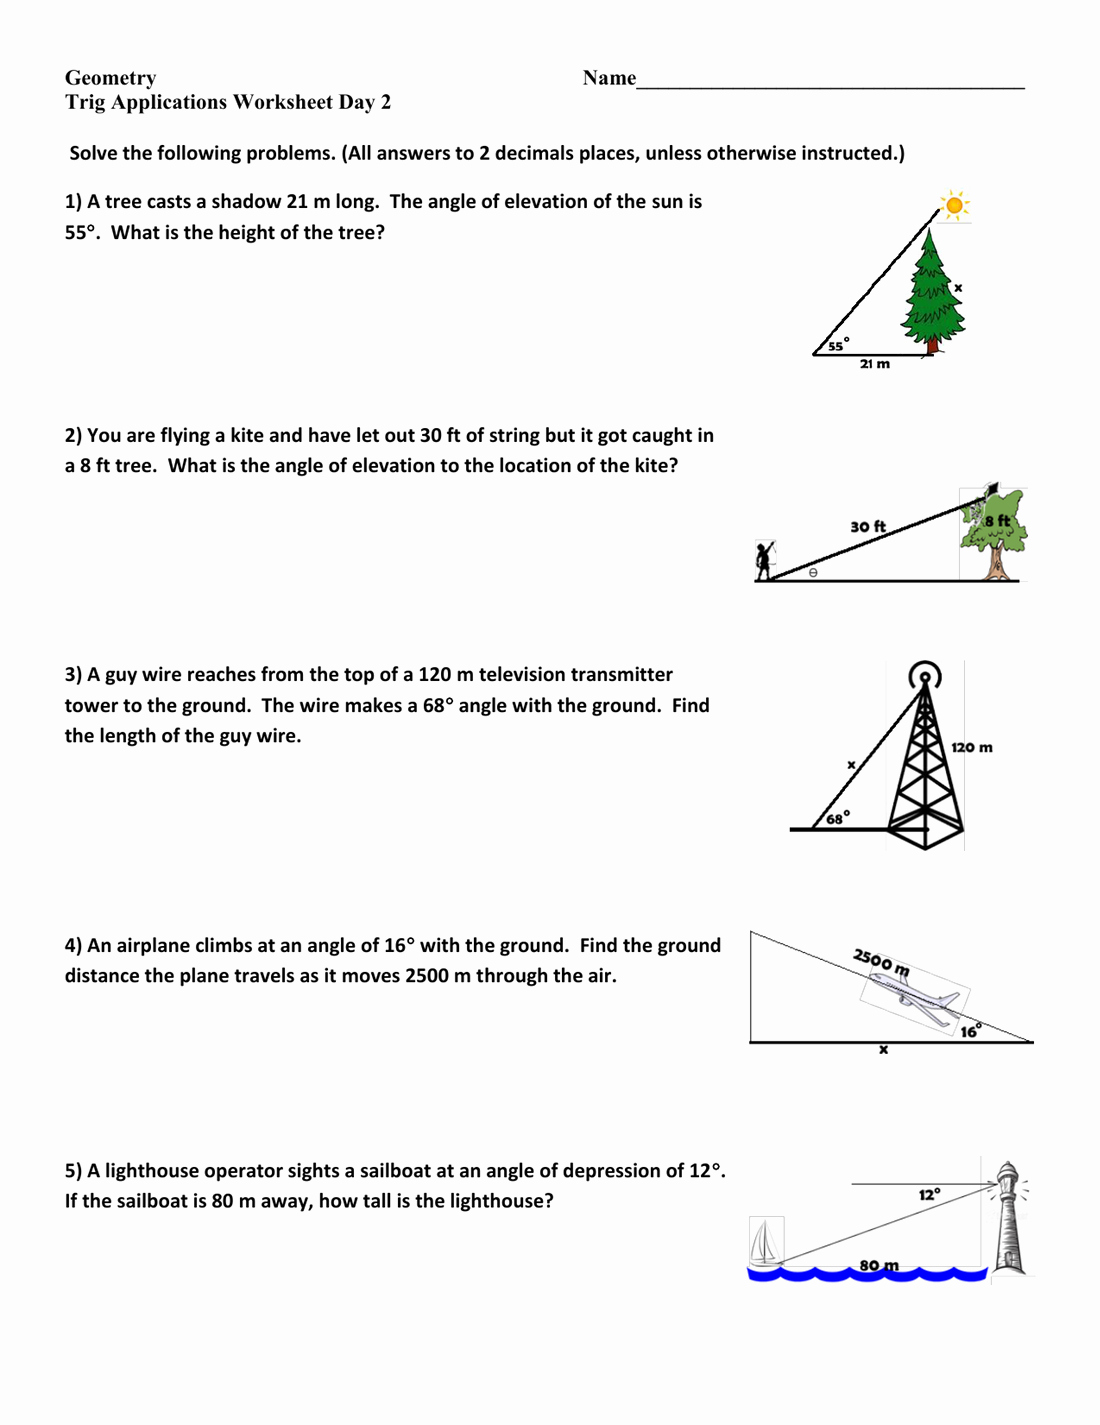 Right Triangle Trigonometry Worksheet Answers New Trigonometry Triangles Mechanical Electrical Wiringelc